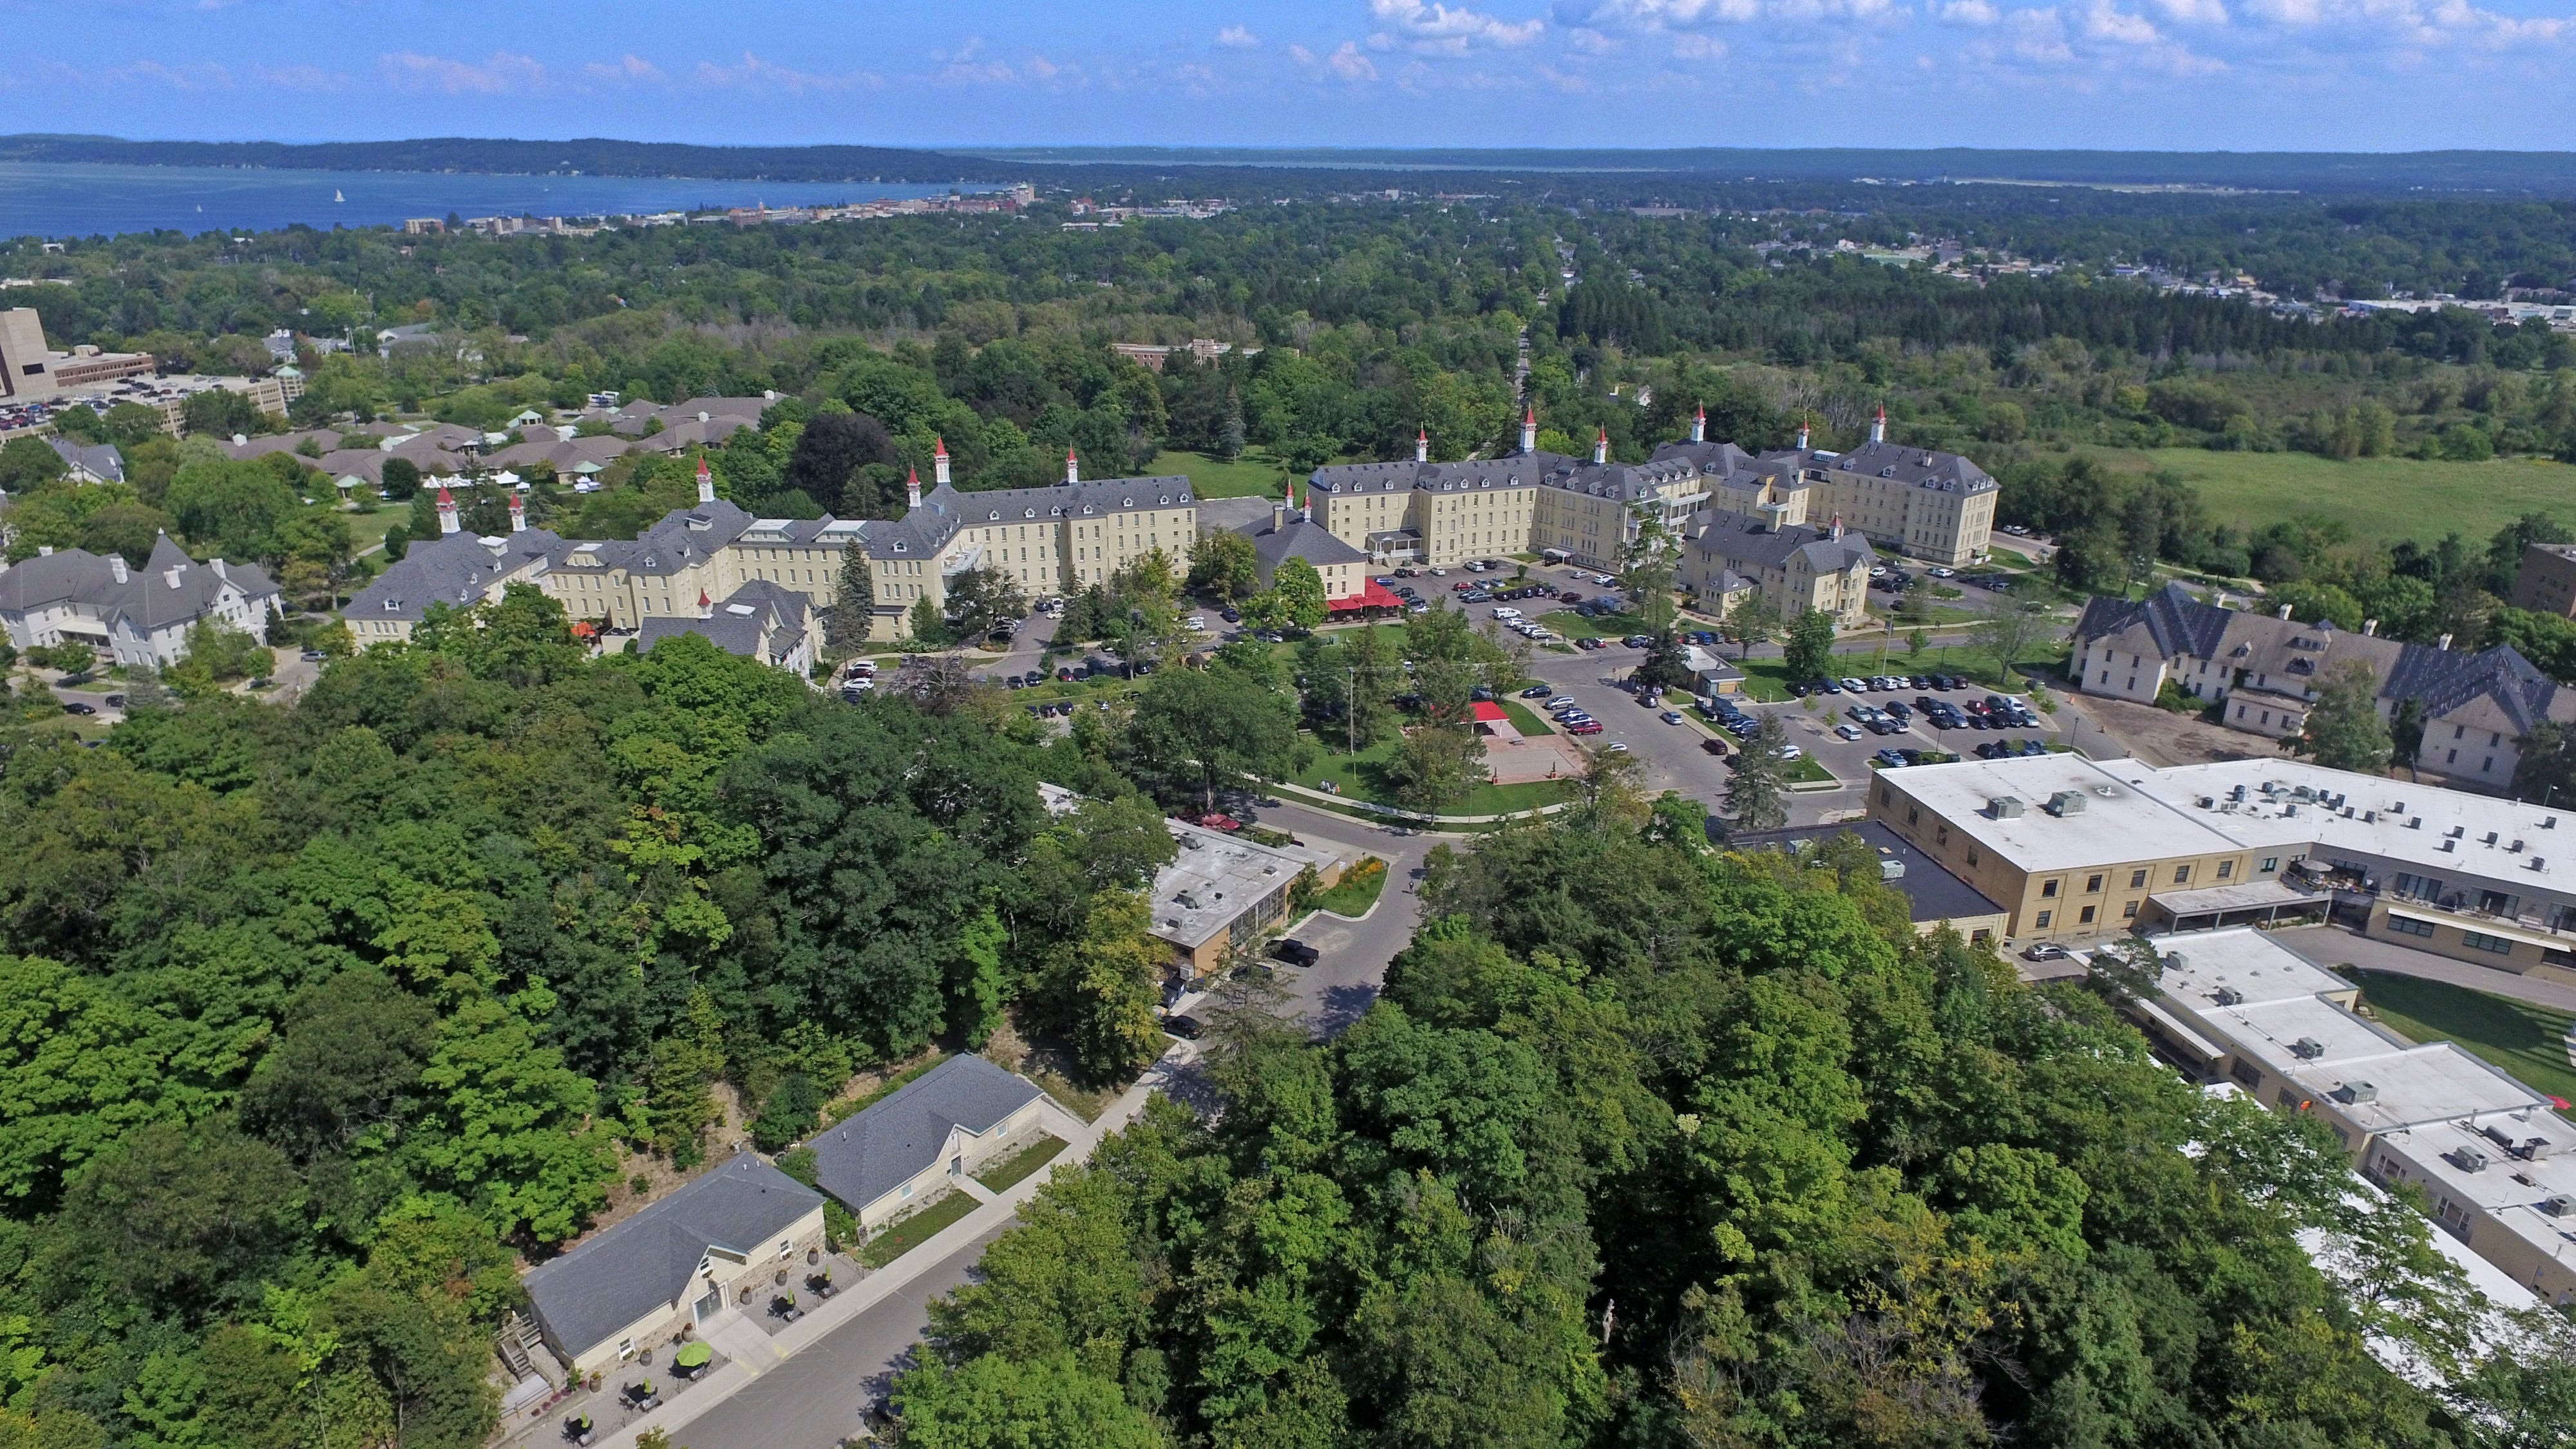 An aerial view of the former Traverse City State Hospital. The decommissioned psychiatric hospital now holds The Village at Grand Traverse Commons — among other developments.